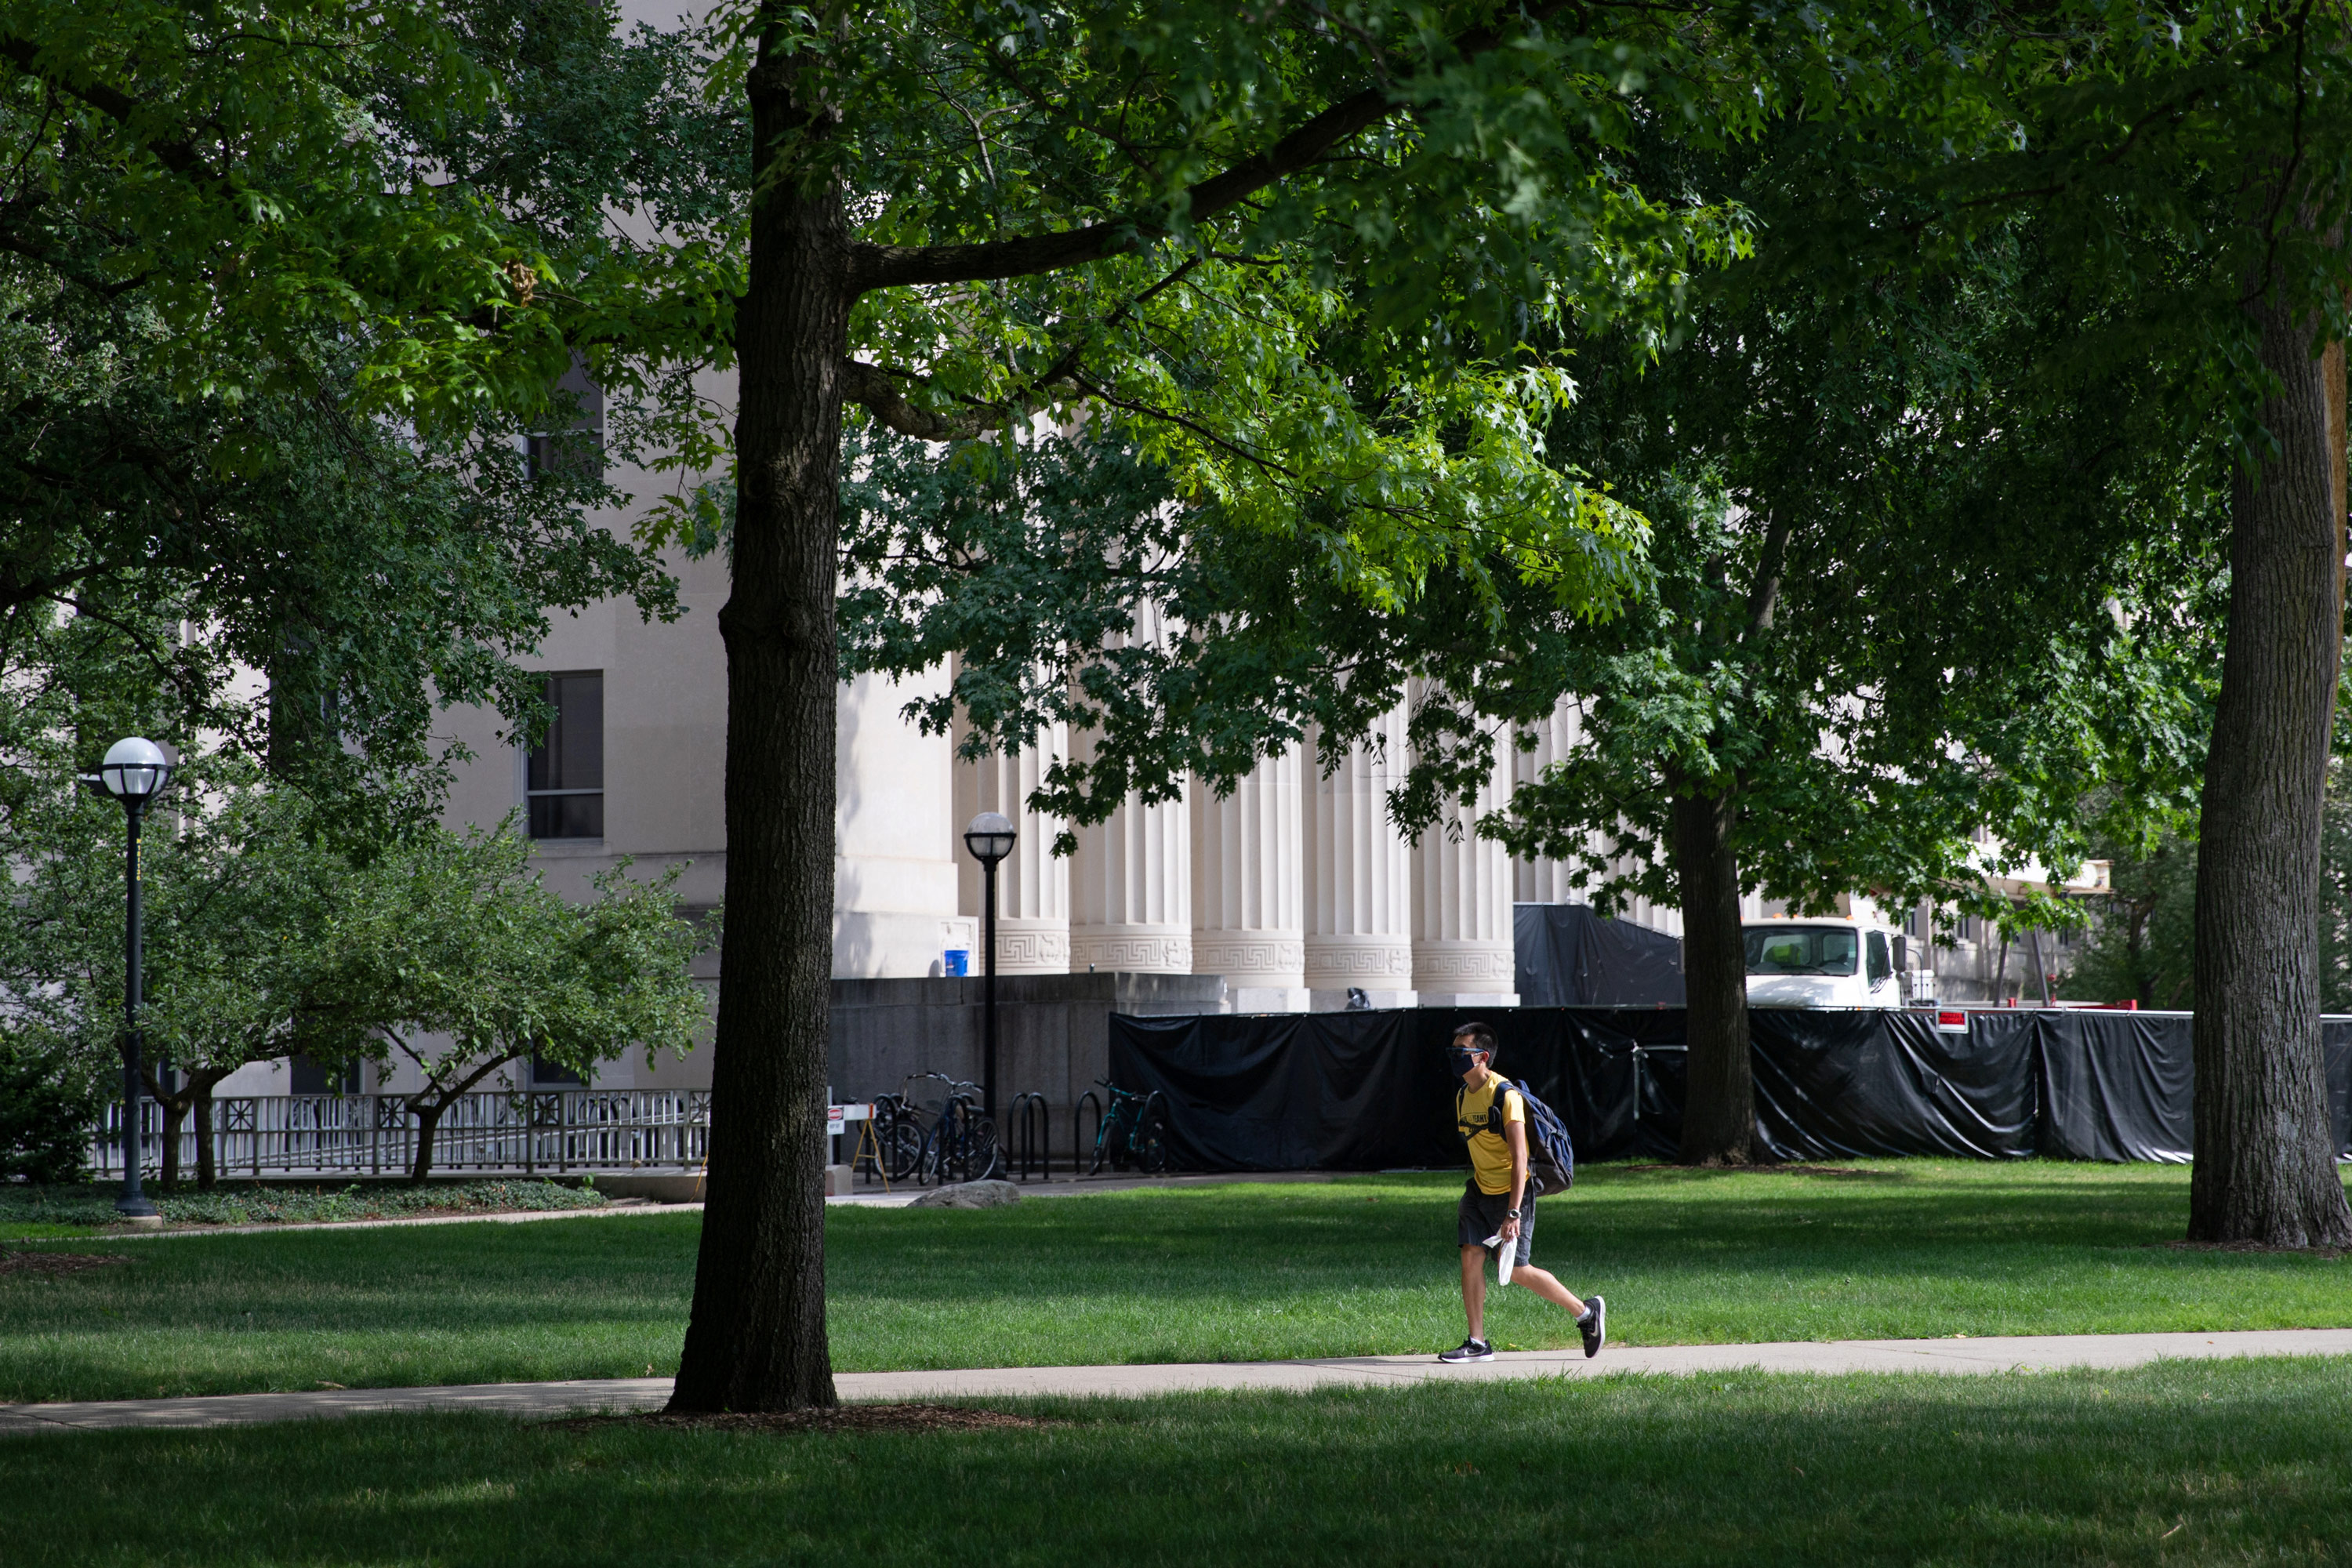 University of Michigan students given immediate stay-at-home order amid a spike in Covid-19 cases